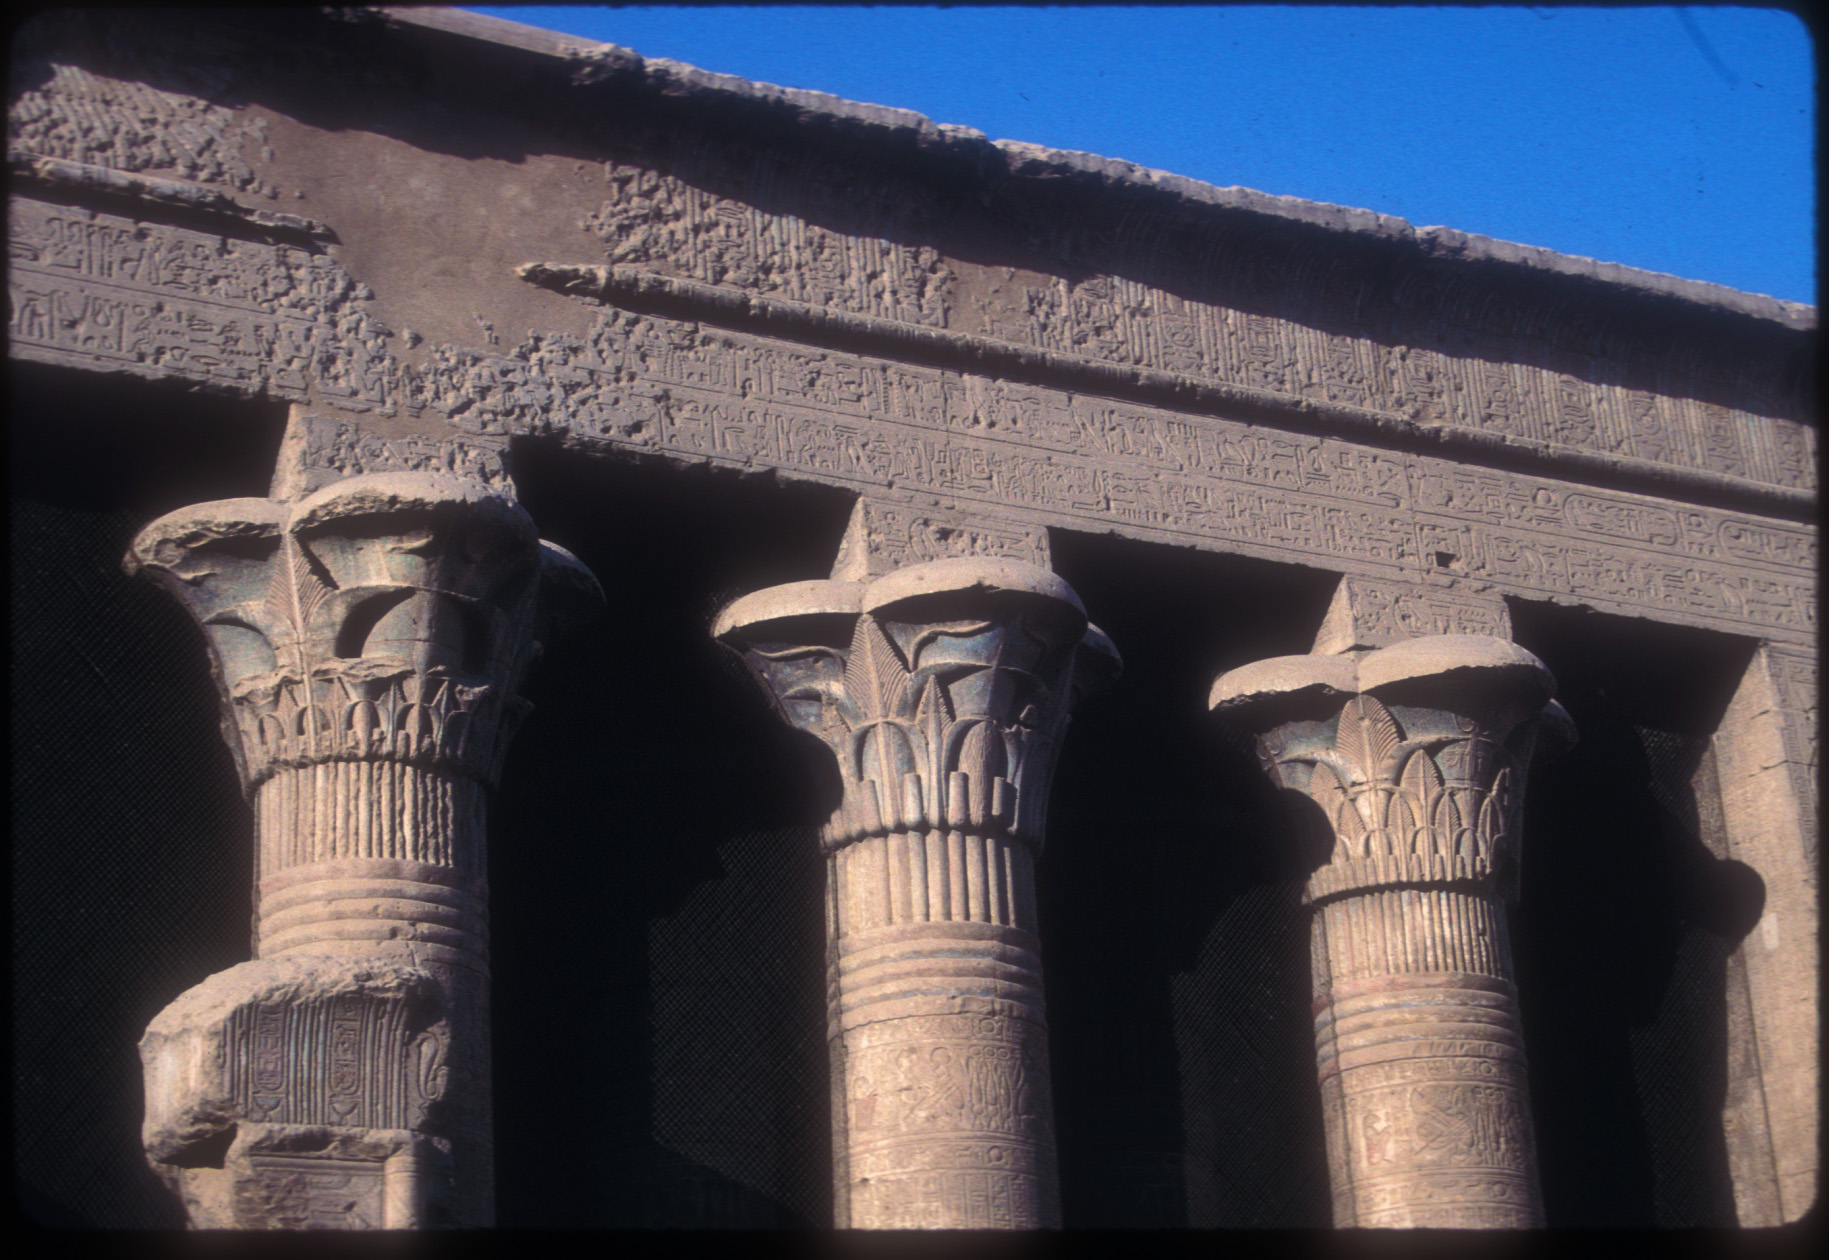 Architectural Columns: After